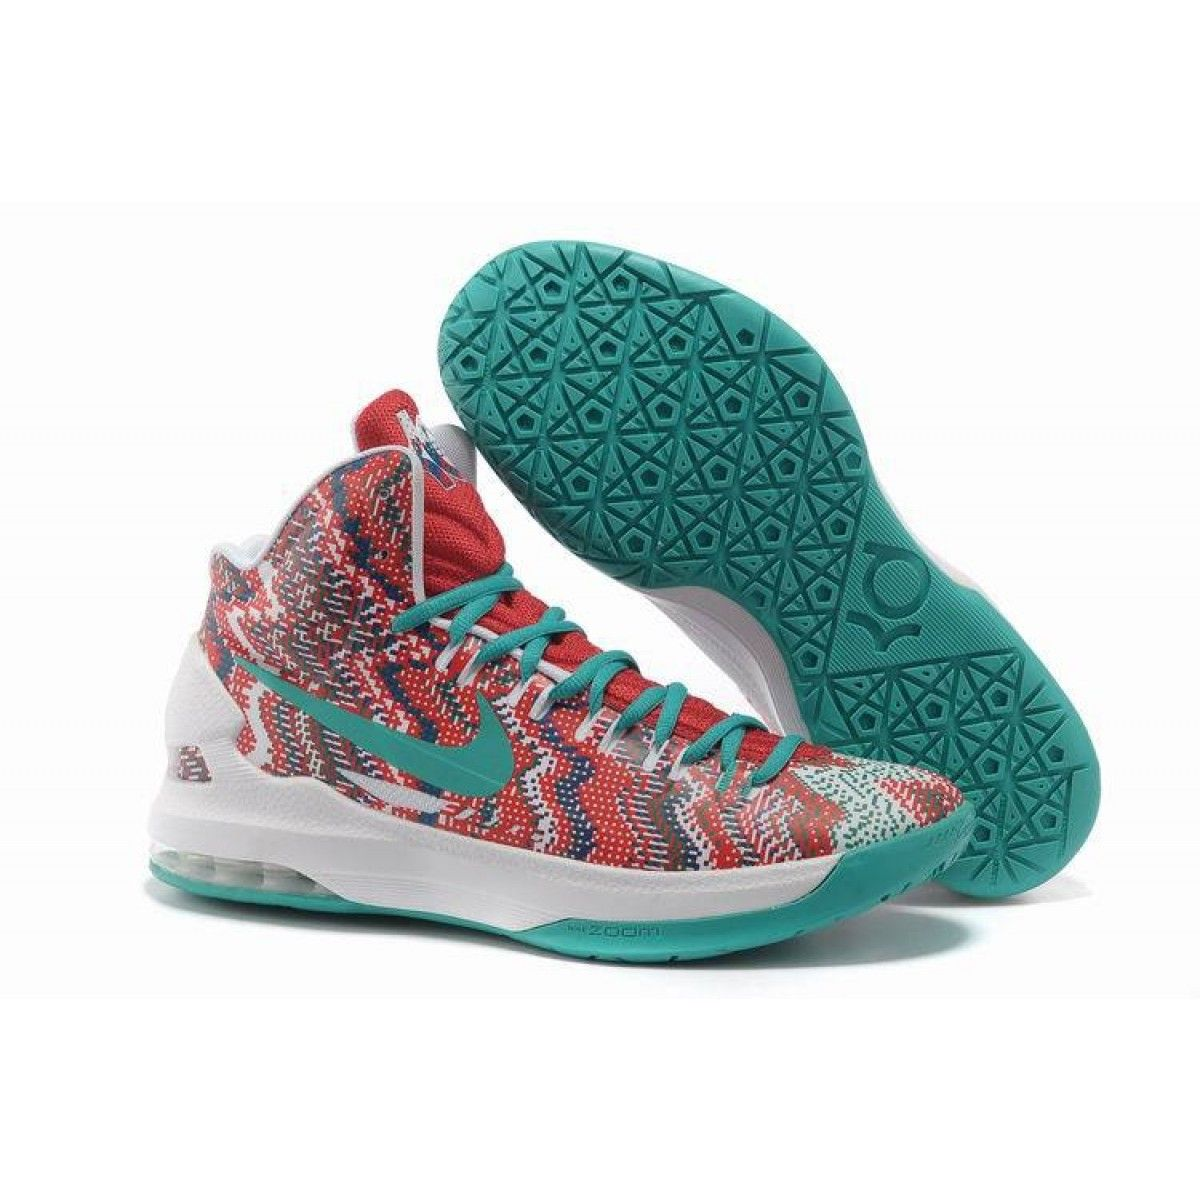 new style 27322 ced45 Women s Nike Zoom Kevin Durant s KD V Basketball shoes Christmas .